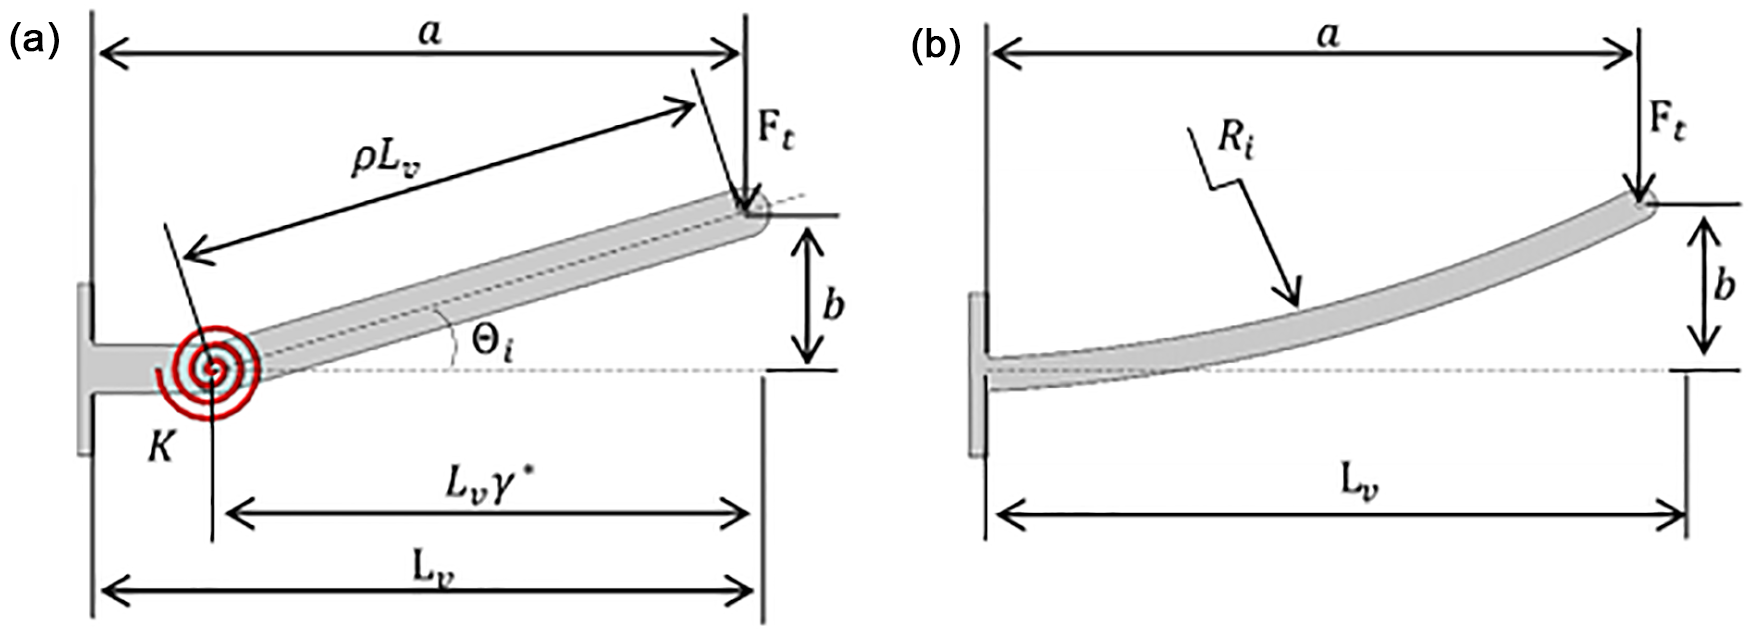 View Of The Draw Shear And Moment Diagrams For Cantilever Beam